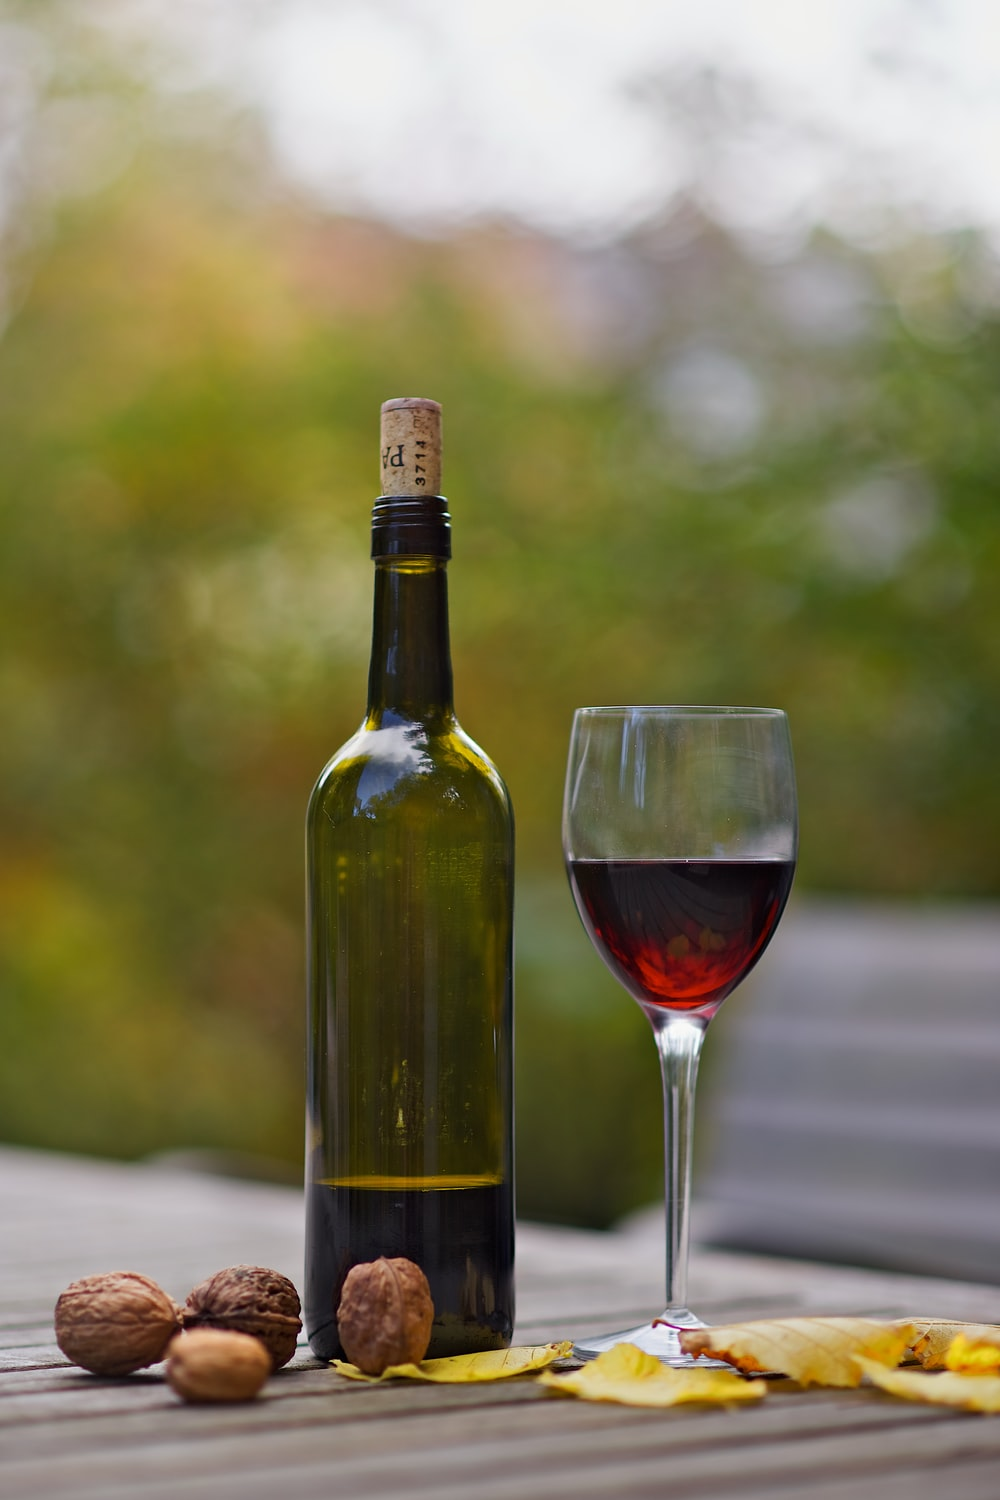 wine bottle beside wine glass on brown wooden surface